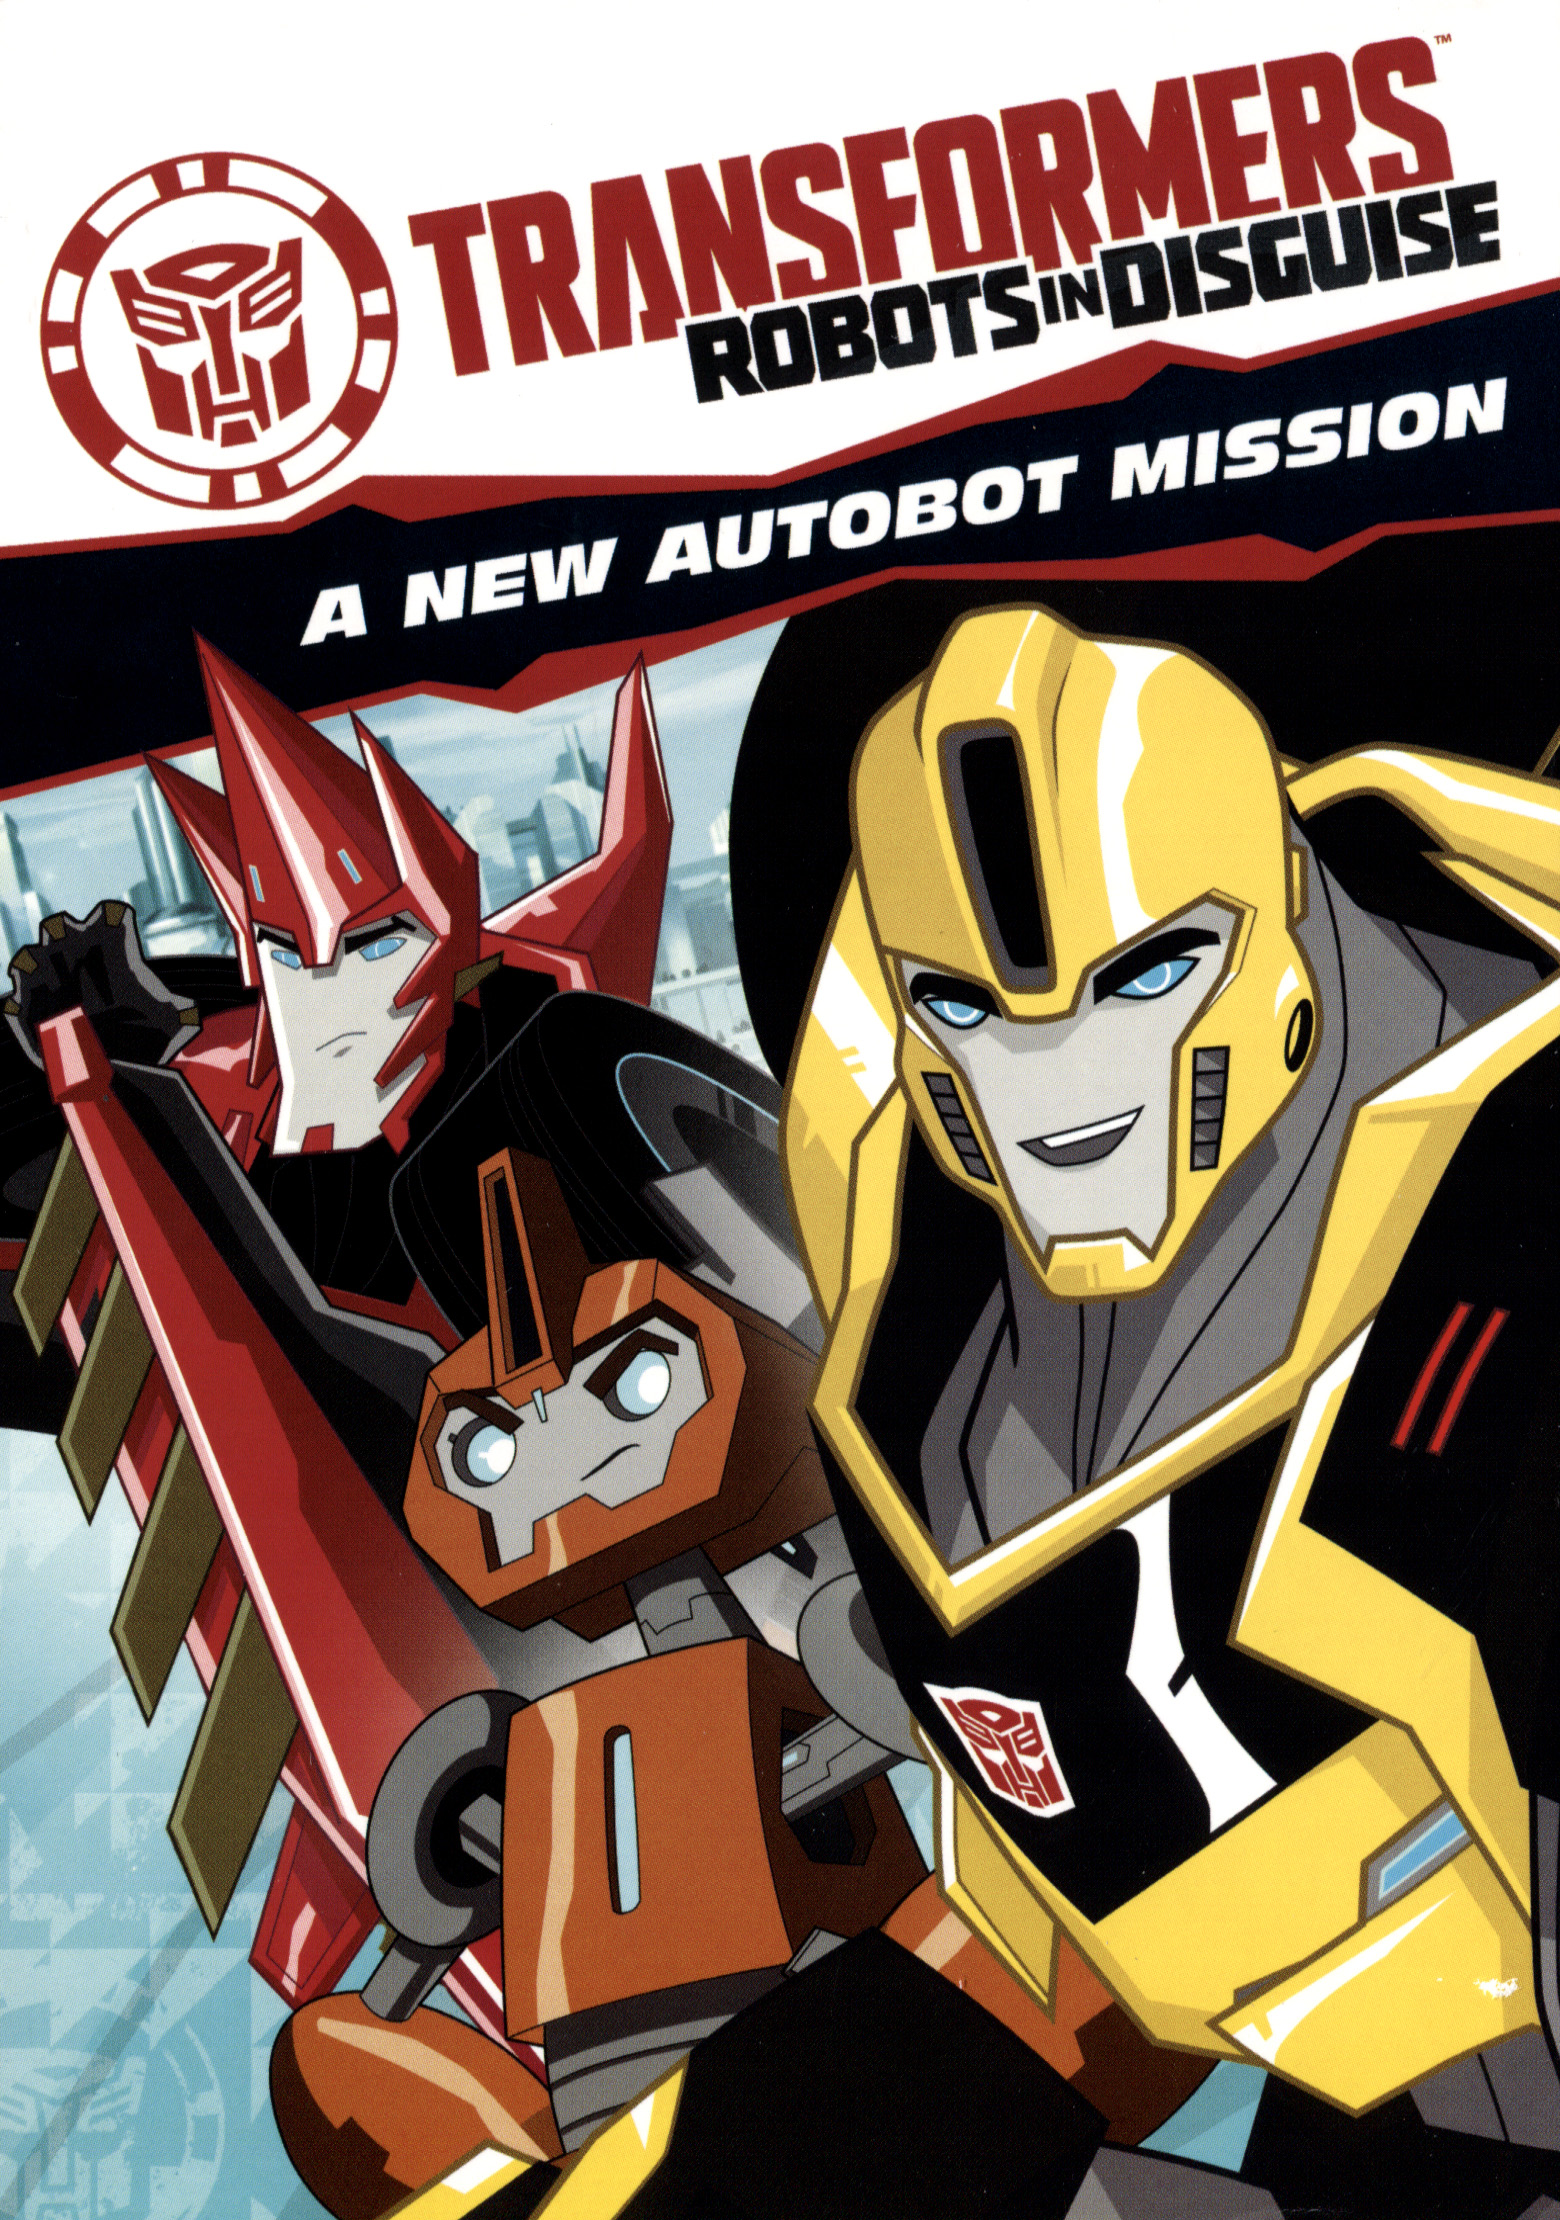 Transformers: Robots in Disguise - A New Autobot Mission